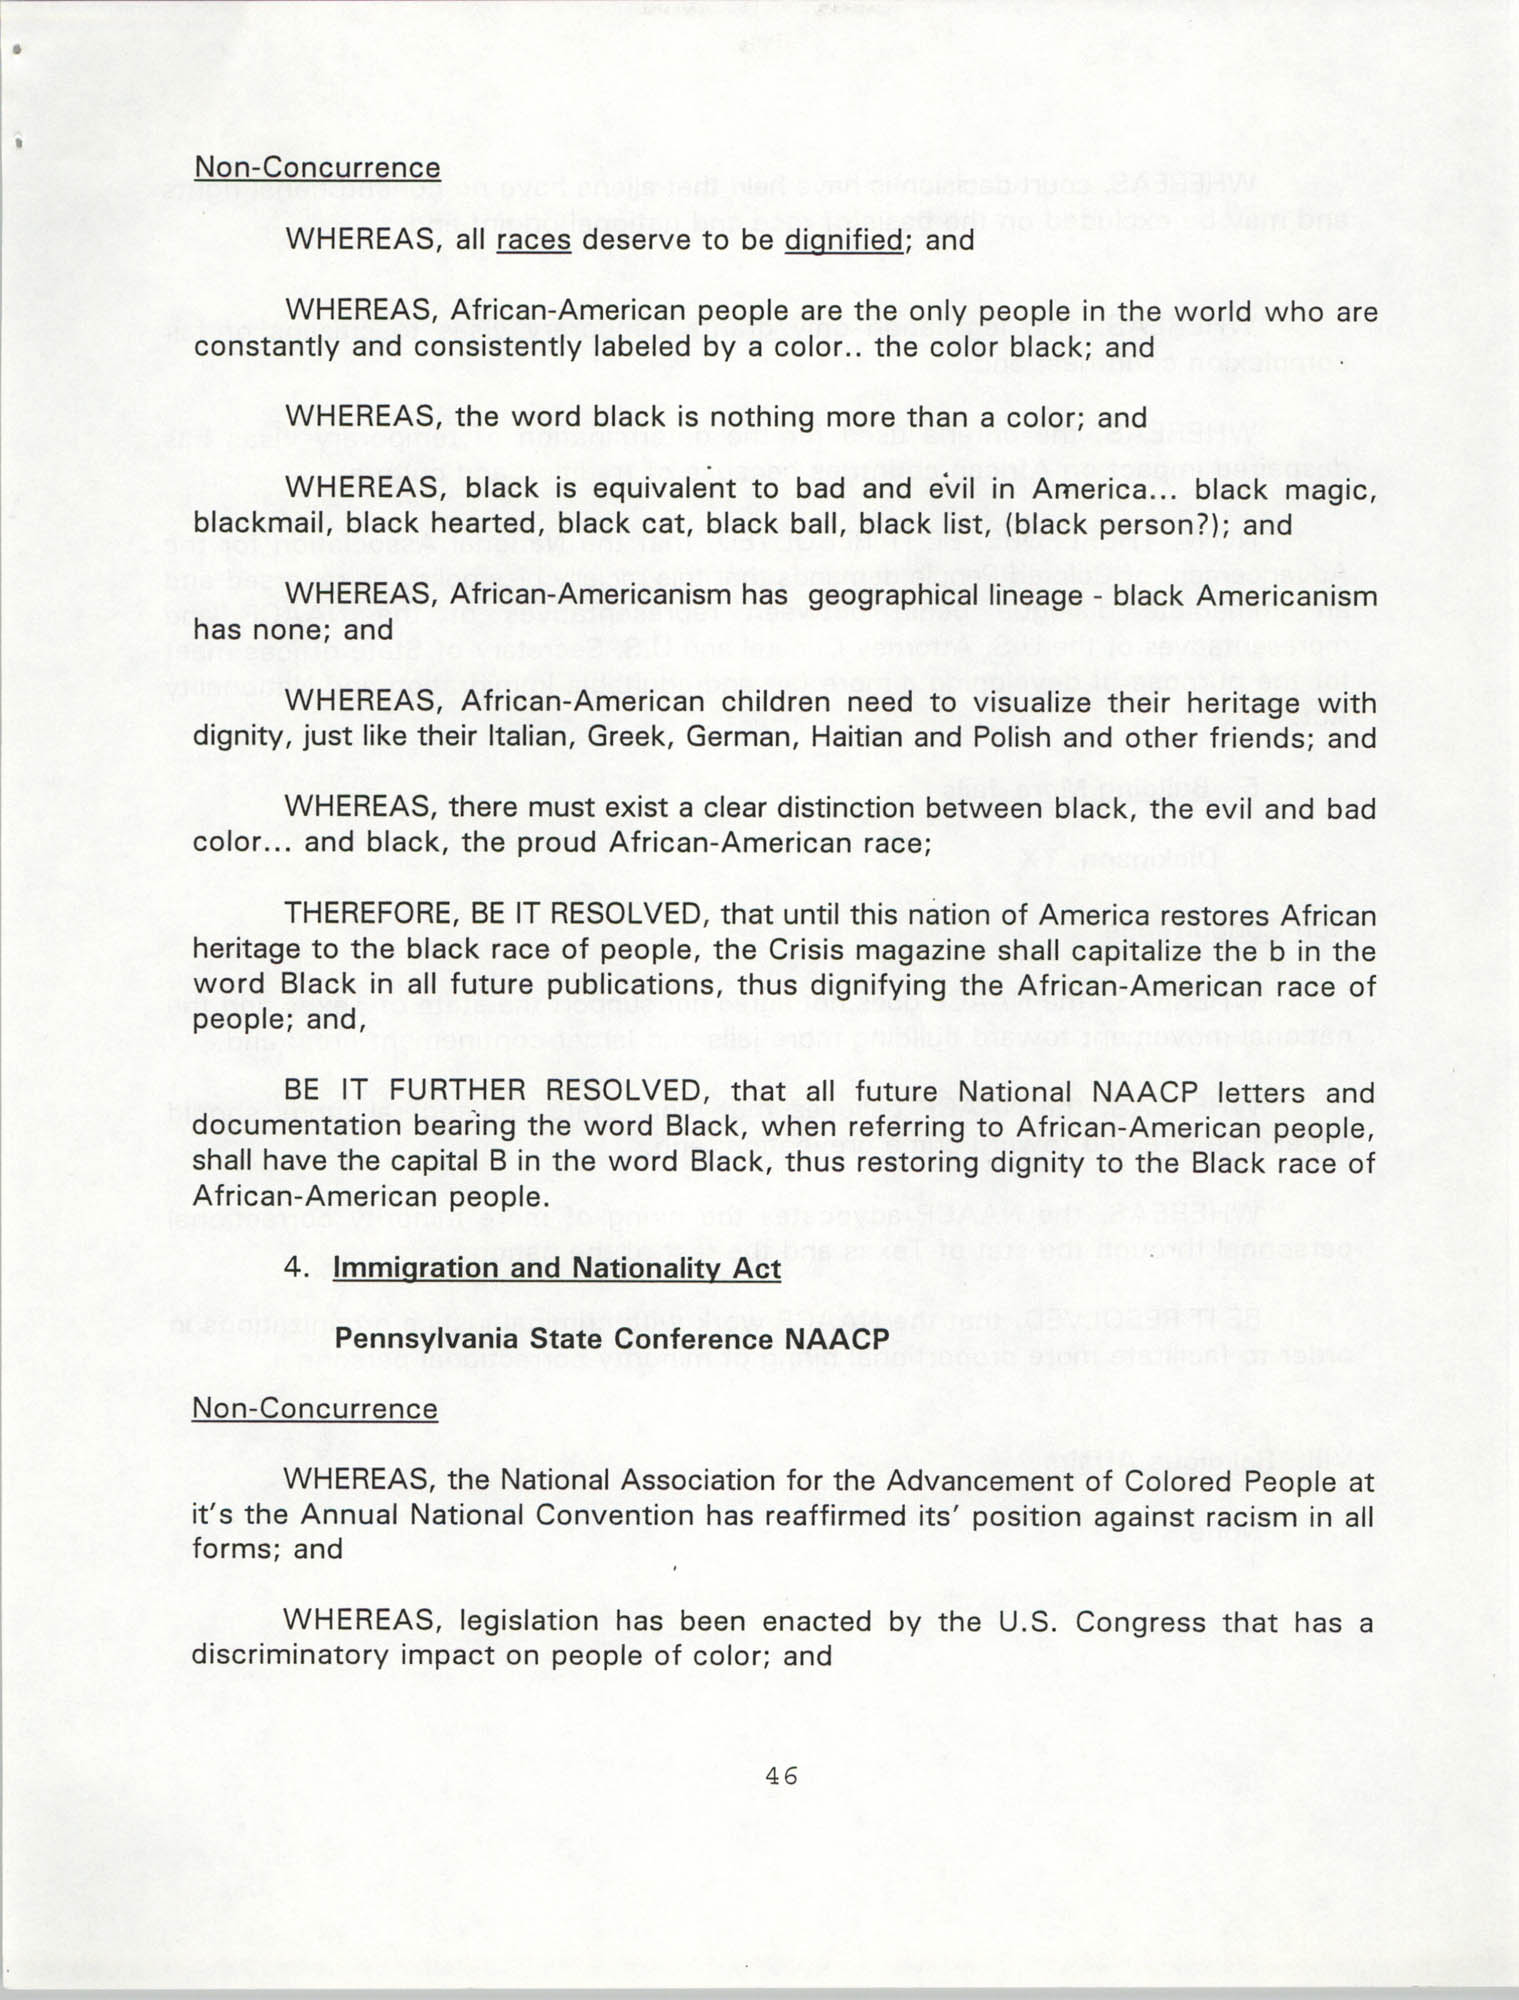 Resolutions Submitted Under Article X, Section 2 of the Constitution of the NAACP, 1994, Page 46